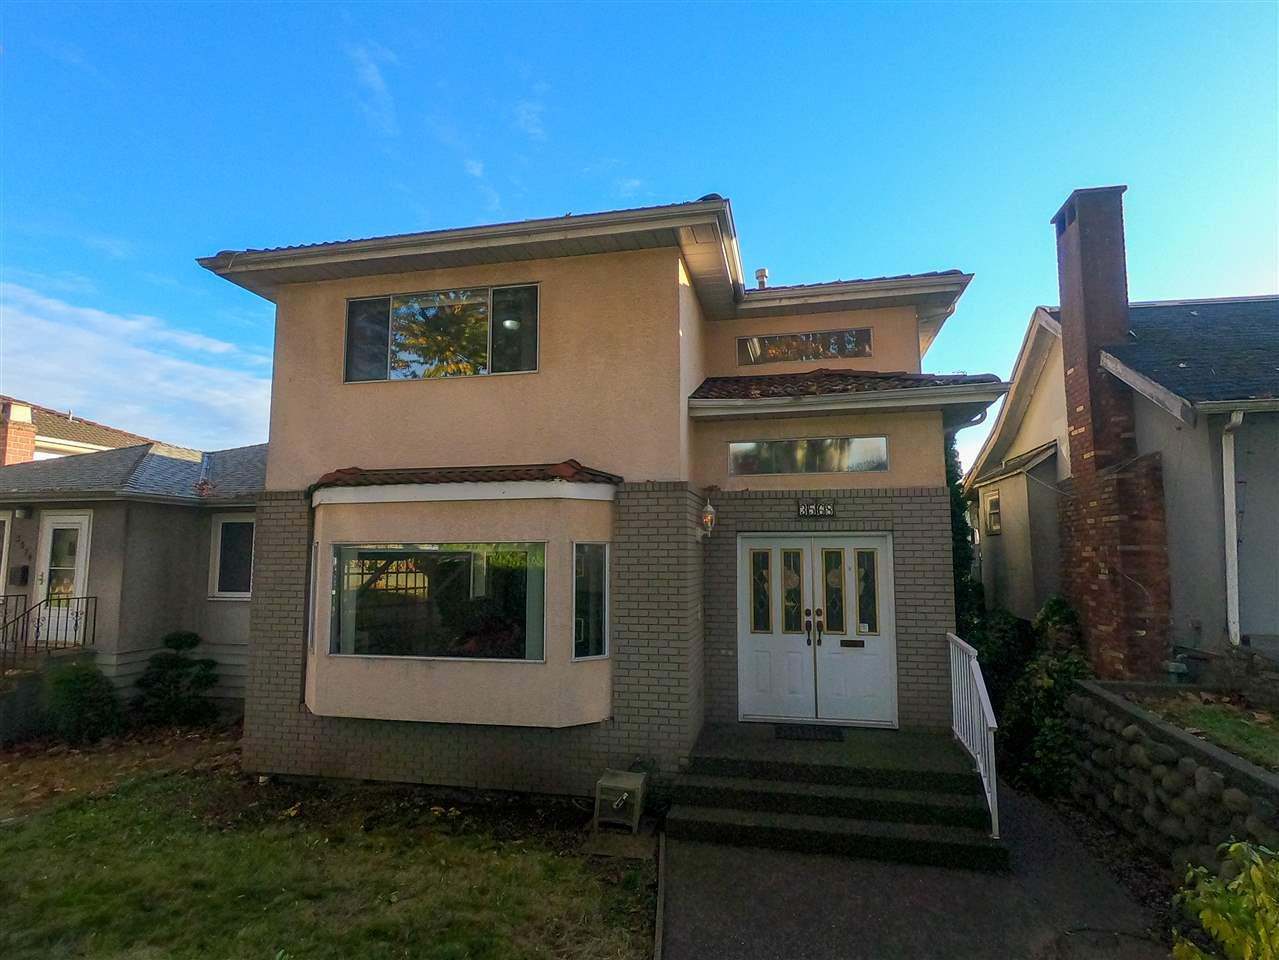 Main Photo: 3568 TURNER Street in Vancouver: Renfrew VE House for sale (Vancouver East)  : MLS®# R2416334